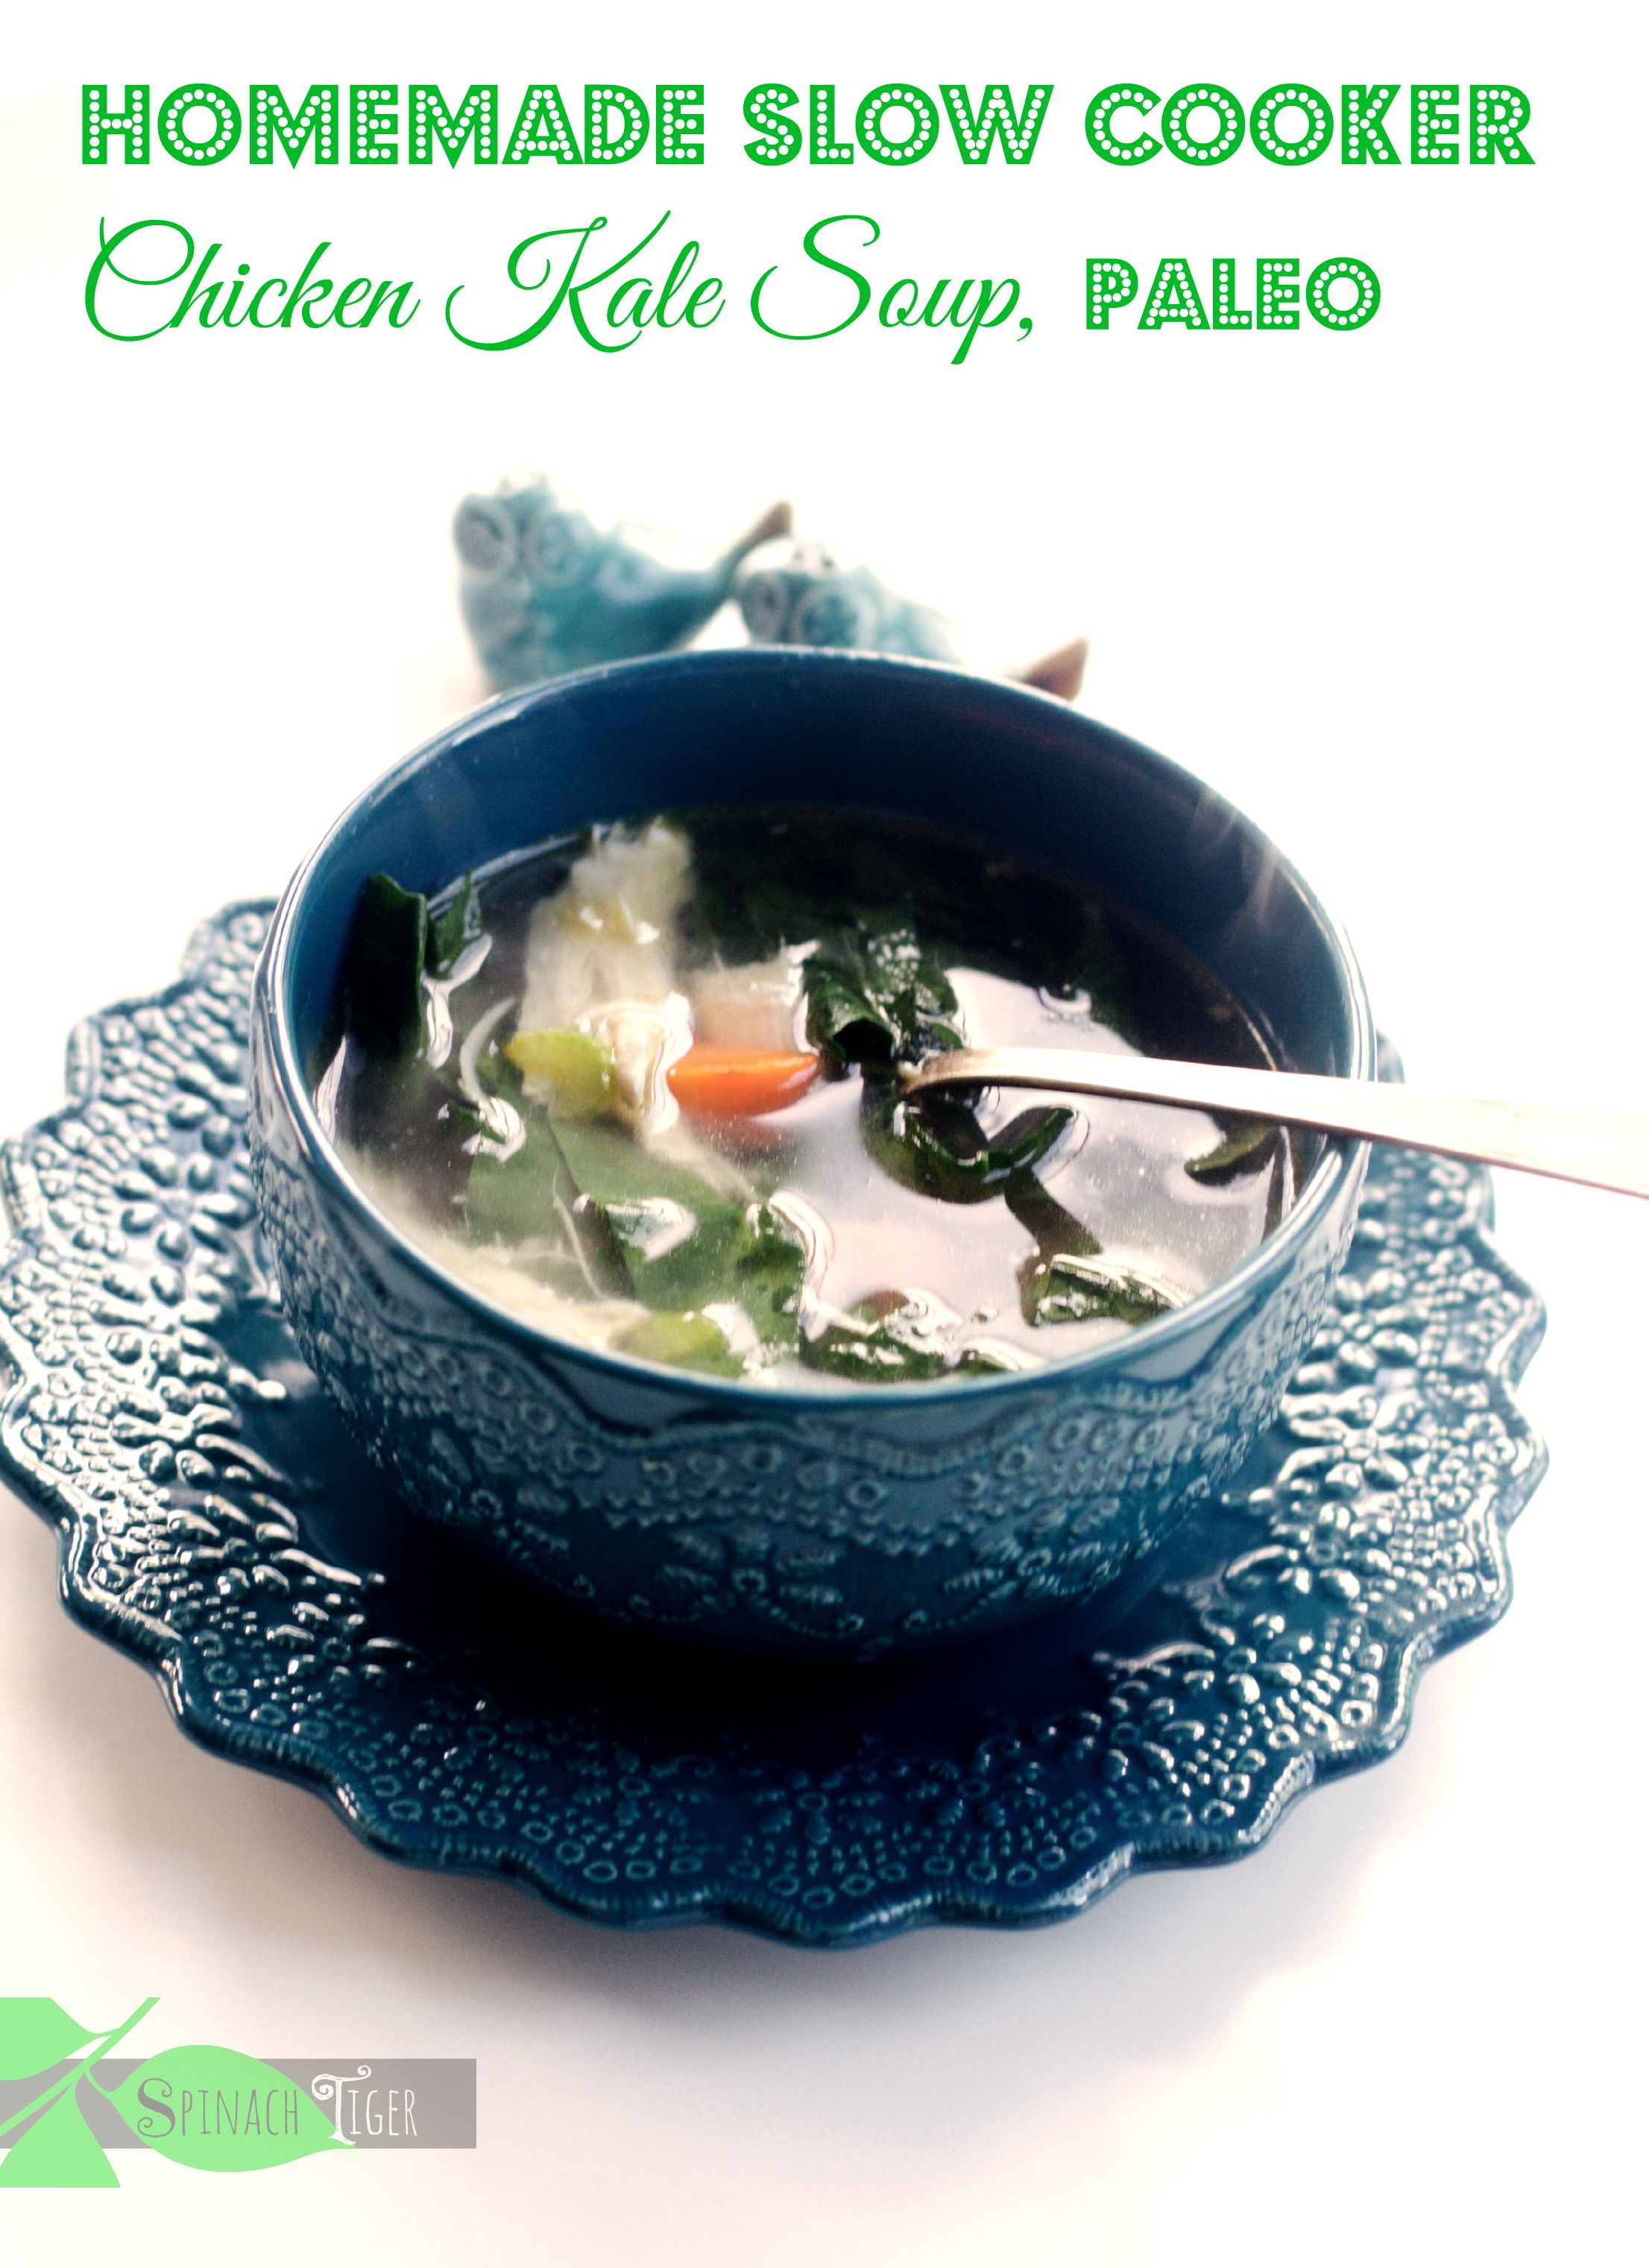 Chicken Kale Soup, Paleo